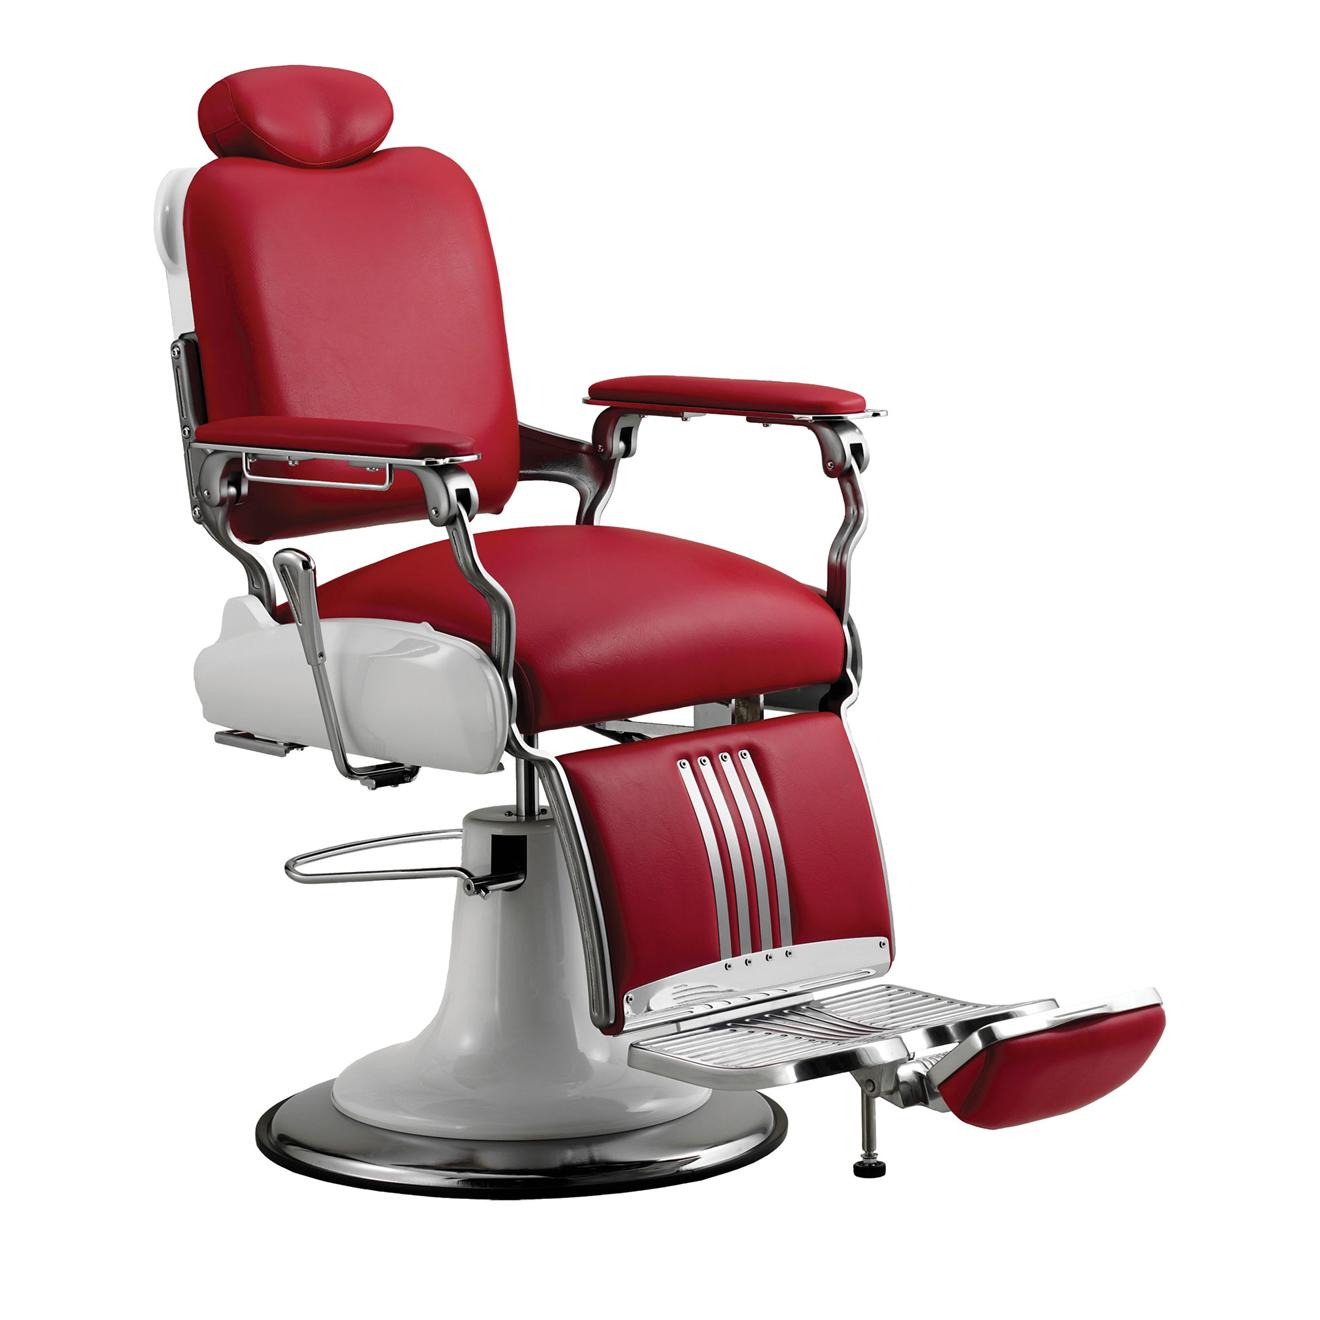 used barber chair for sale tall back chairs girl photos